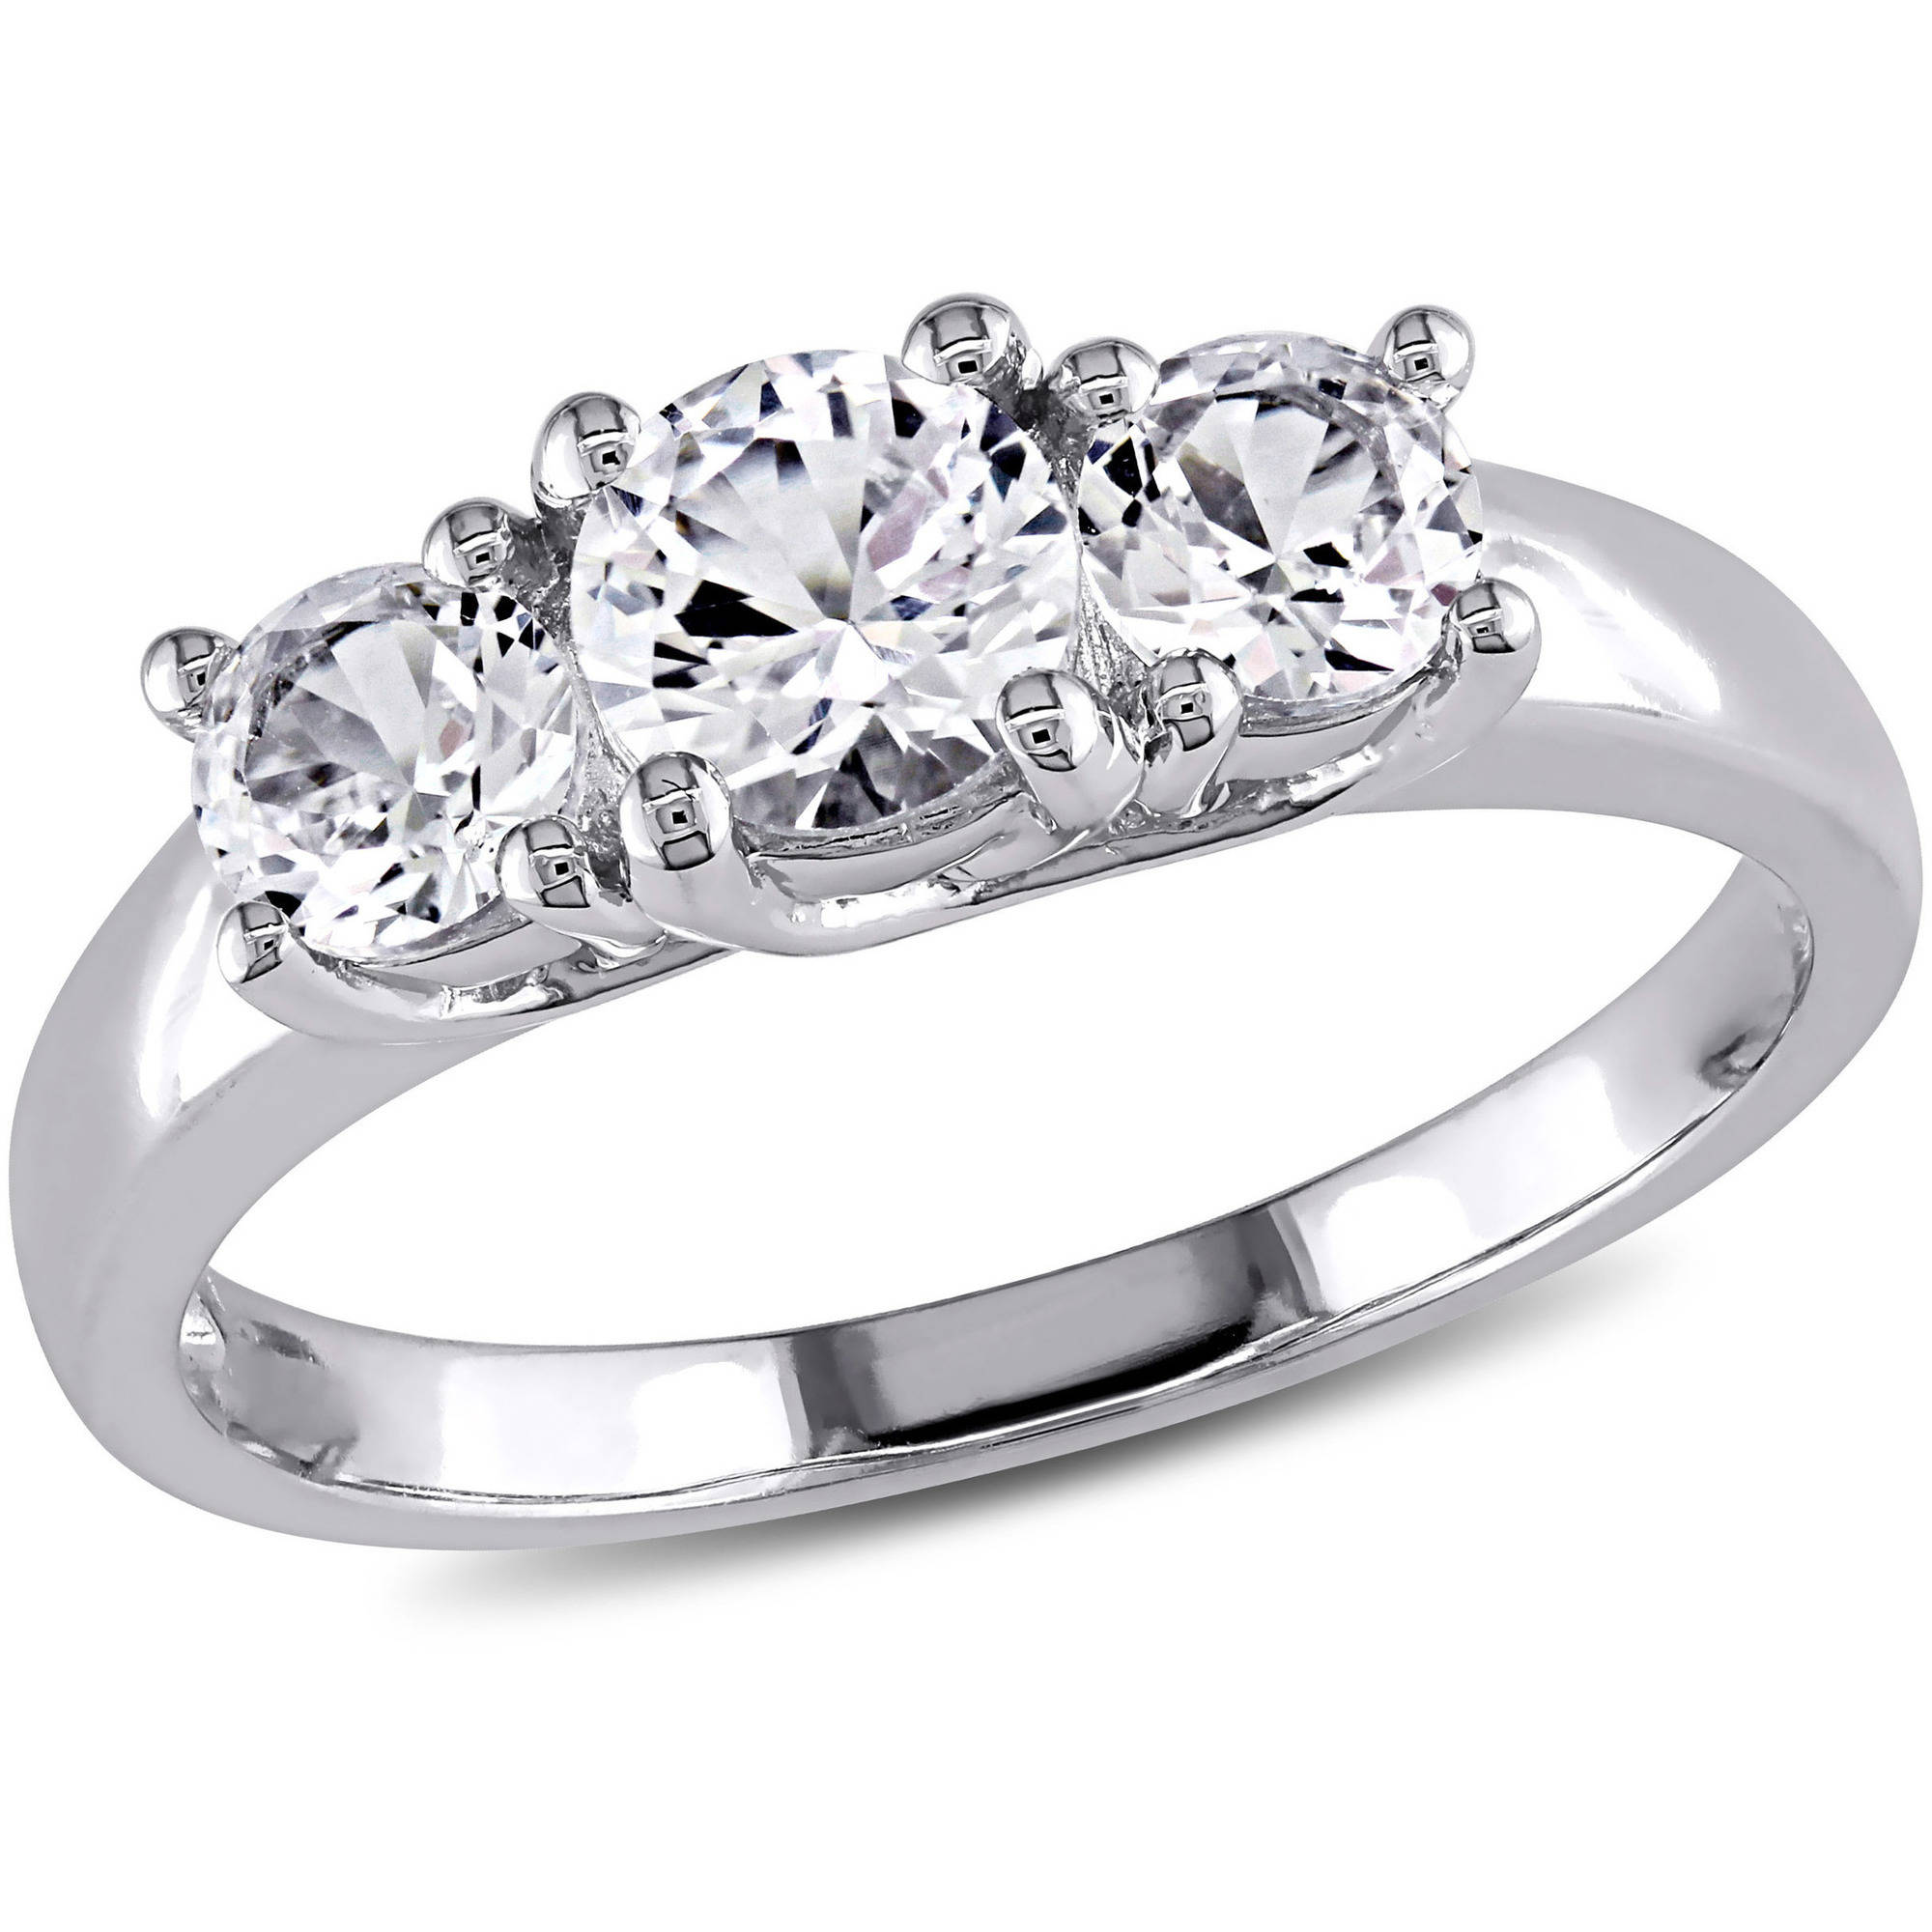 Miabella 1-1/3 Carat T.G.W. Created White Sapphire 10kt White Gold Three-Stone Engagement Ring